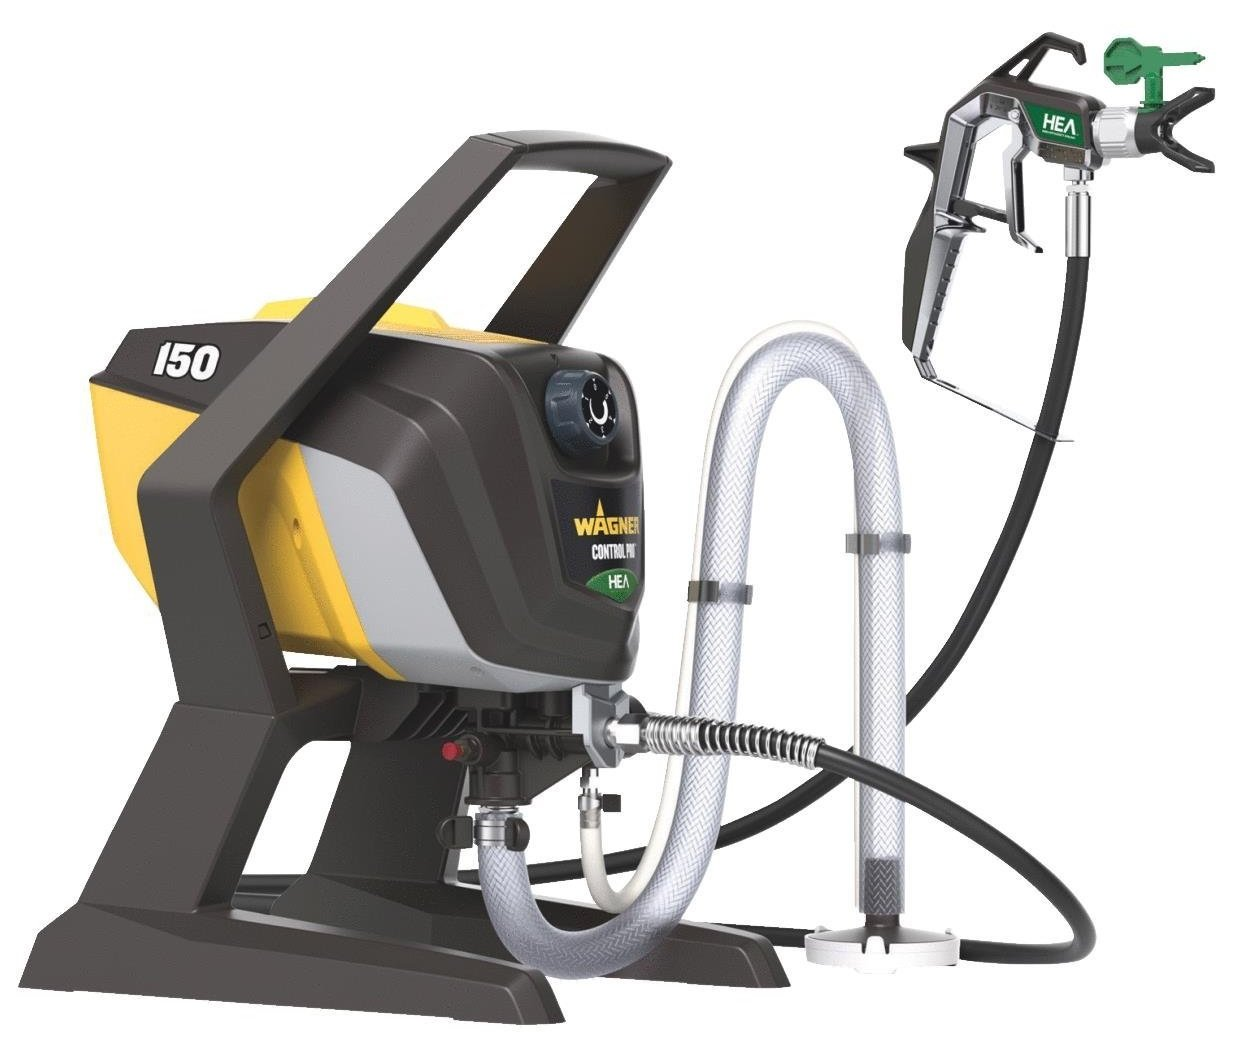 Wagner Power Products Control 150 Paint Sprayer